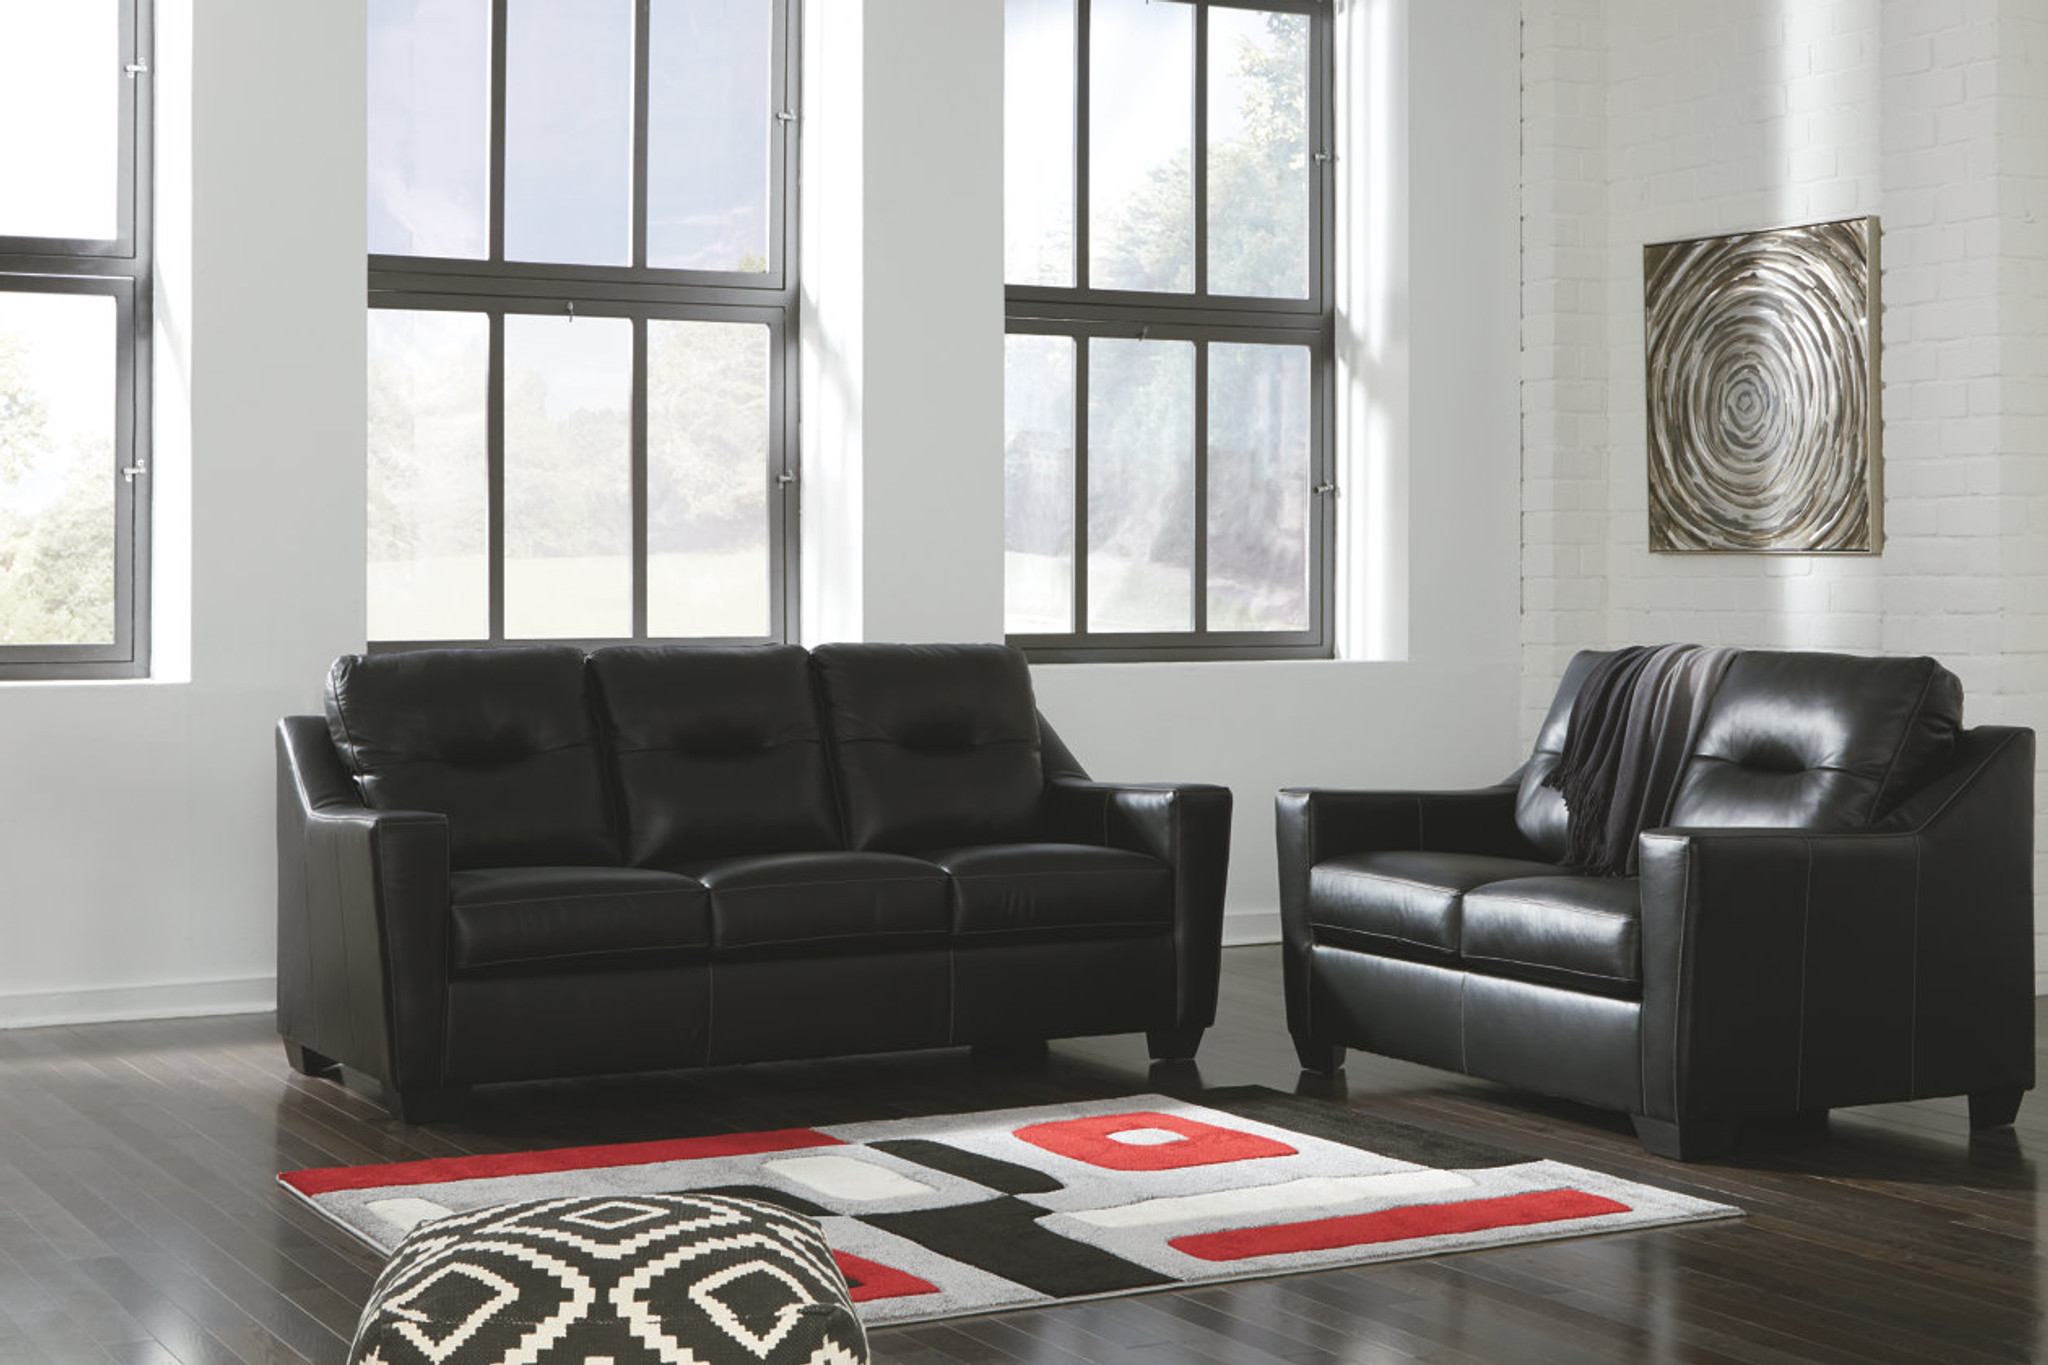 Prime 2 Pcs Kensbridge Black Leather Sofa Loveseat Andrewgaddart Wooden Chair Designs For Living Room Andrewgaddartcom